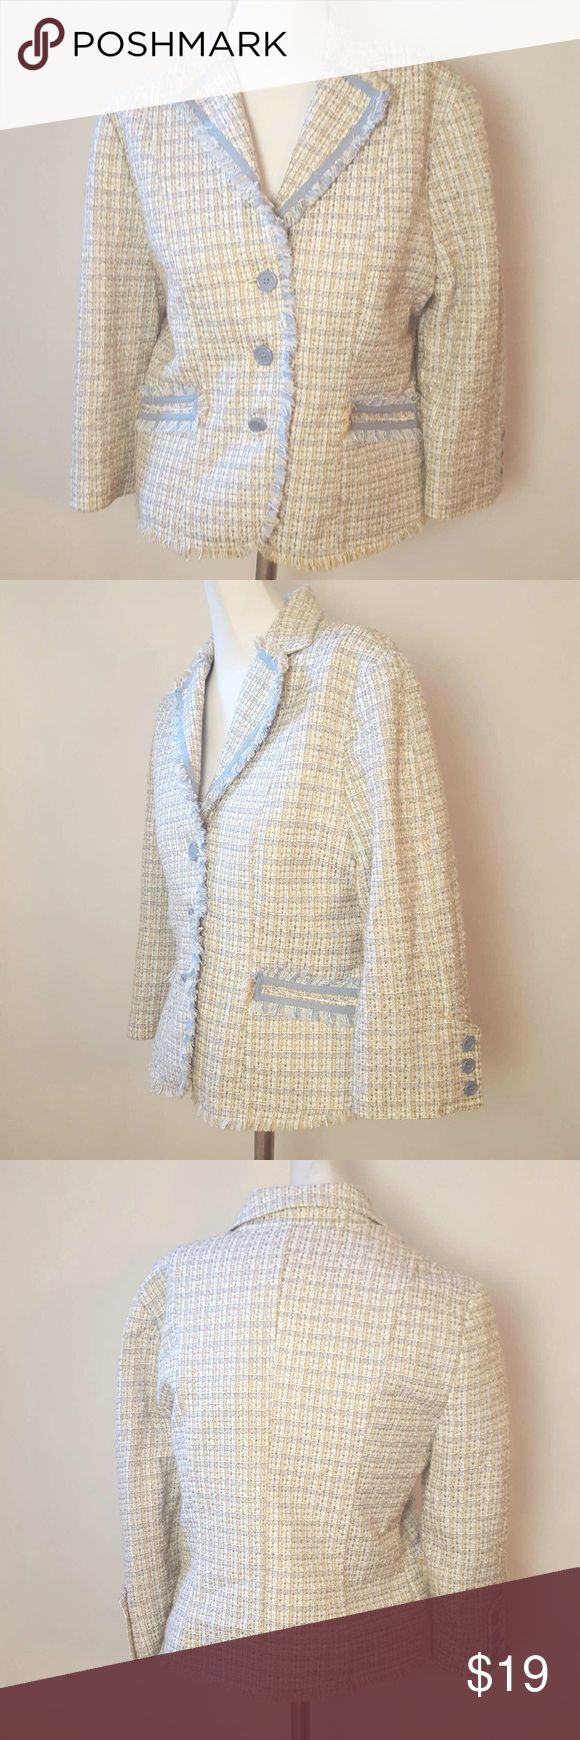 "MCM Tweed Blazer mCm Tweed Blazer. Three-button front closure. Two front pockets. Three-quarter length sleeves with three buttons. Colors: beige, pink, blue. Size Large. 100% acrylic. Measurements: 36"" bust, 23"" length, 18 1/2"" sleeve length. MCM Jackets & Coats Blazers"